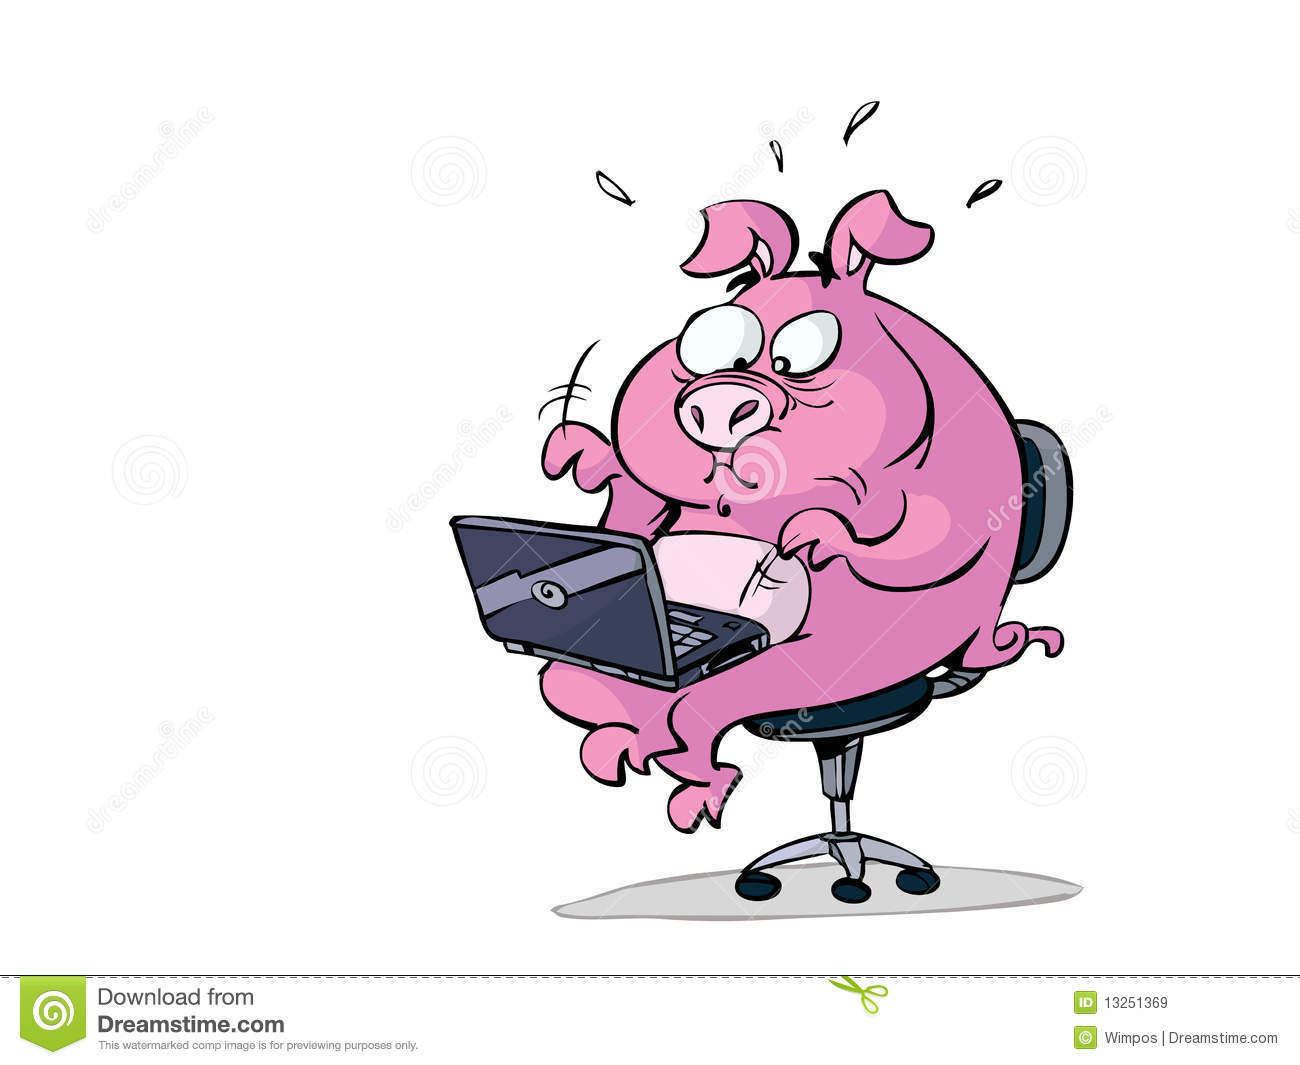 computer chair for gaming office overstock stressed pig with laptop stock illustration. illustration of work - 13251369